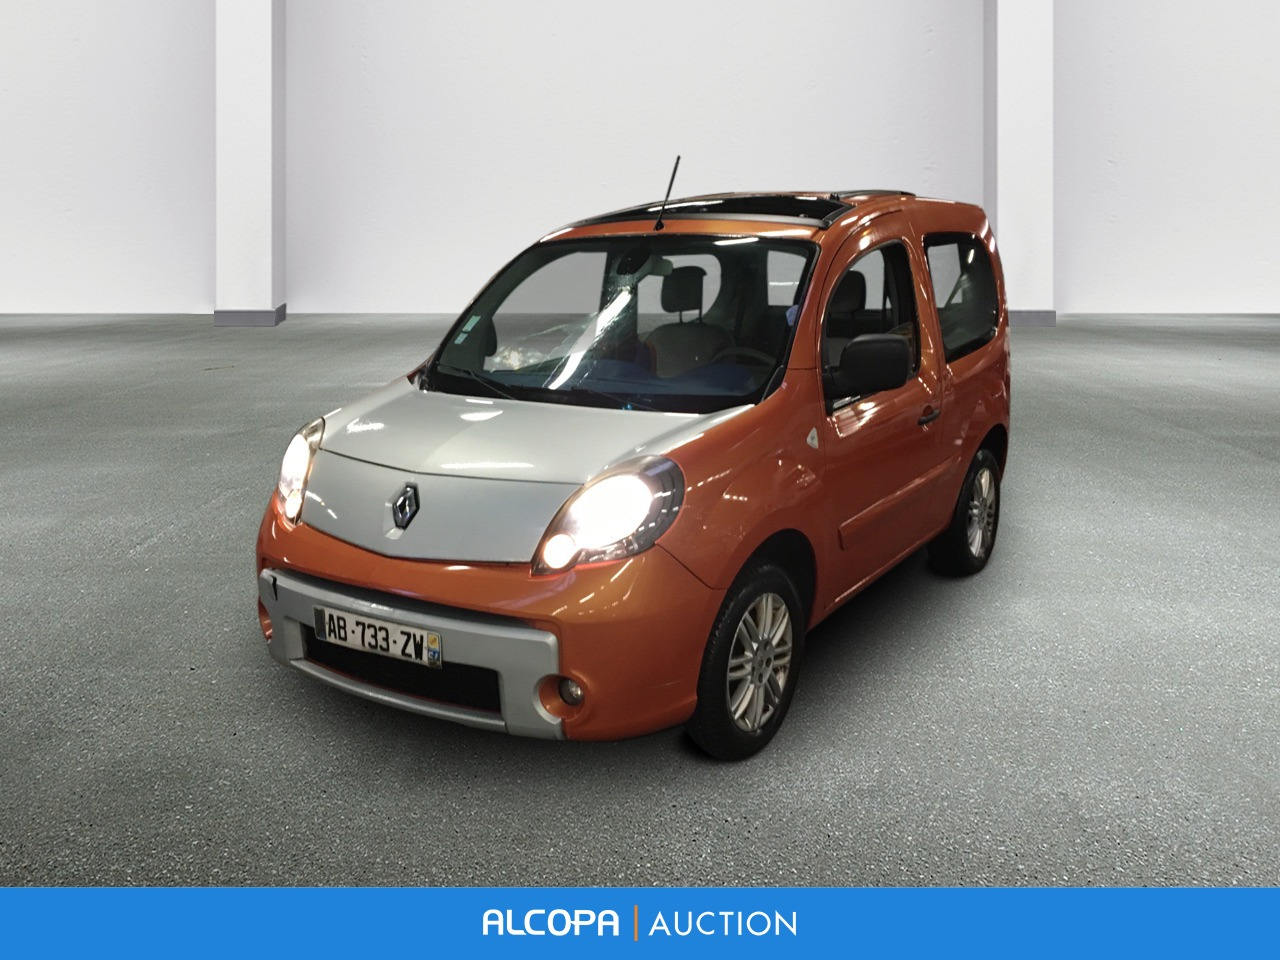 renault kangoo be bop kangoo be bop 1 5 dci 105 alcopa auction. Black Bedroom Furniture Sets. Home Design Ideas